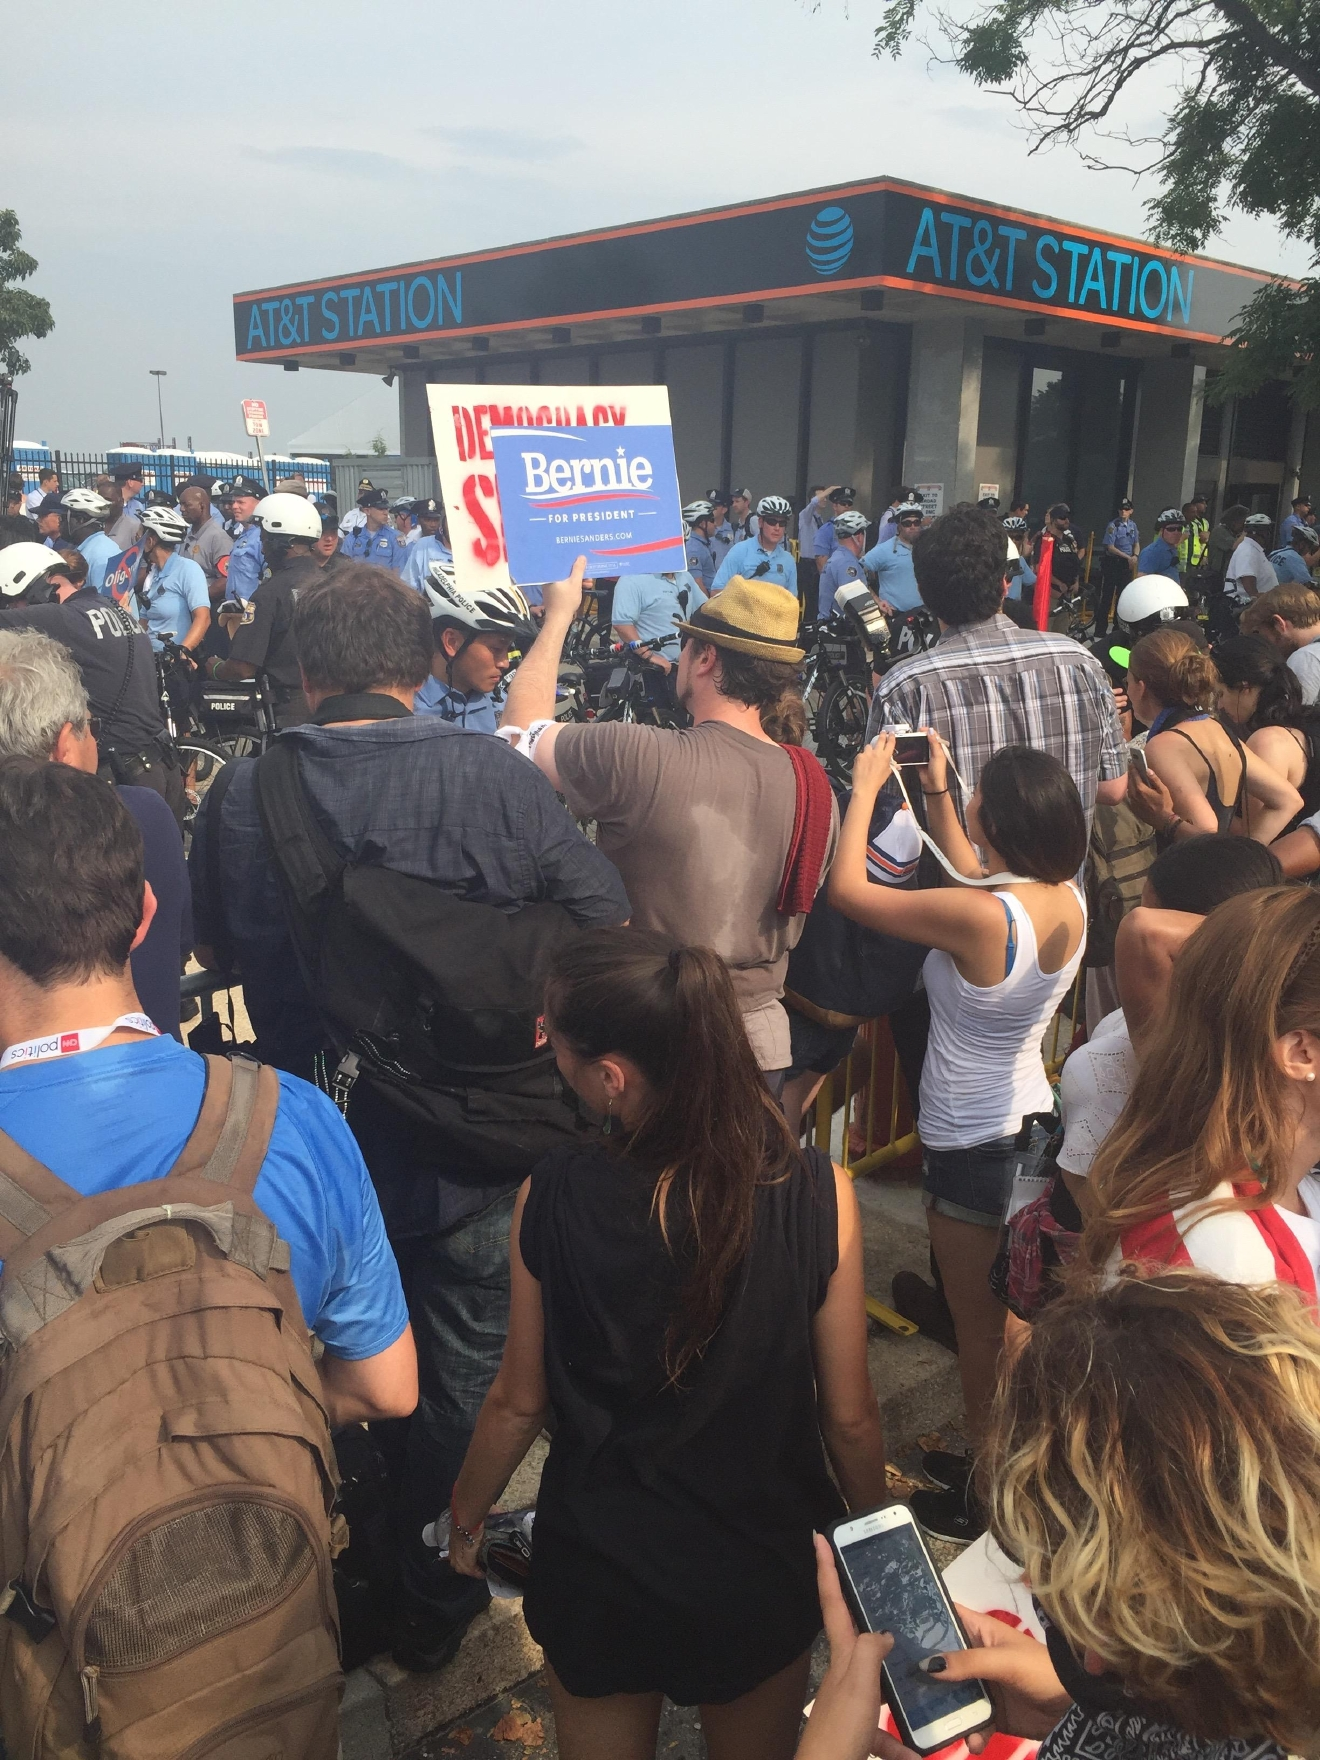 Bernie Sanders supporters gather outside of the Democratic National Convention. (Amanda Ota, Sinclair Broadcast Group)